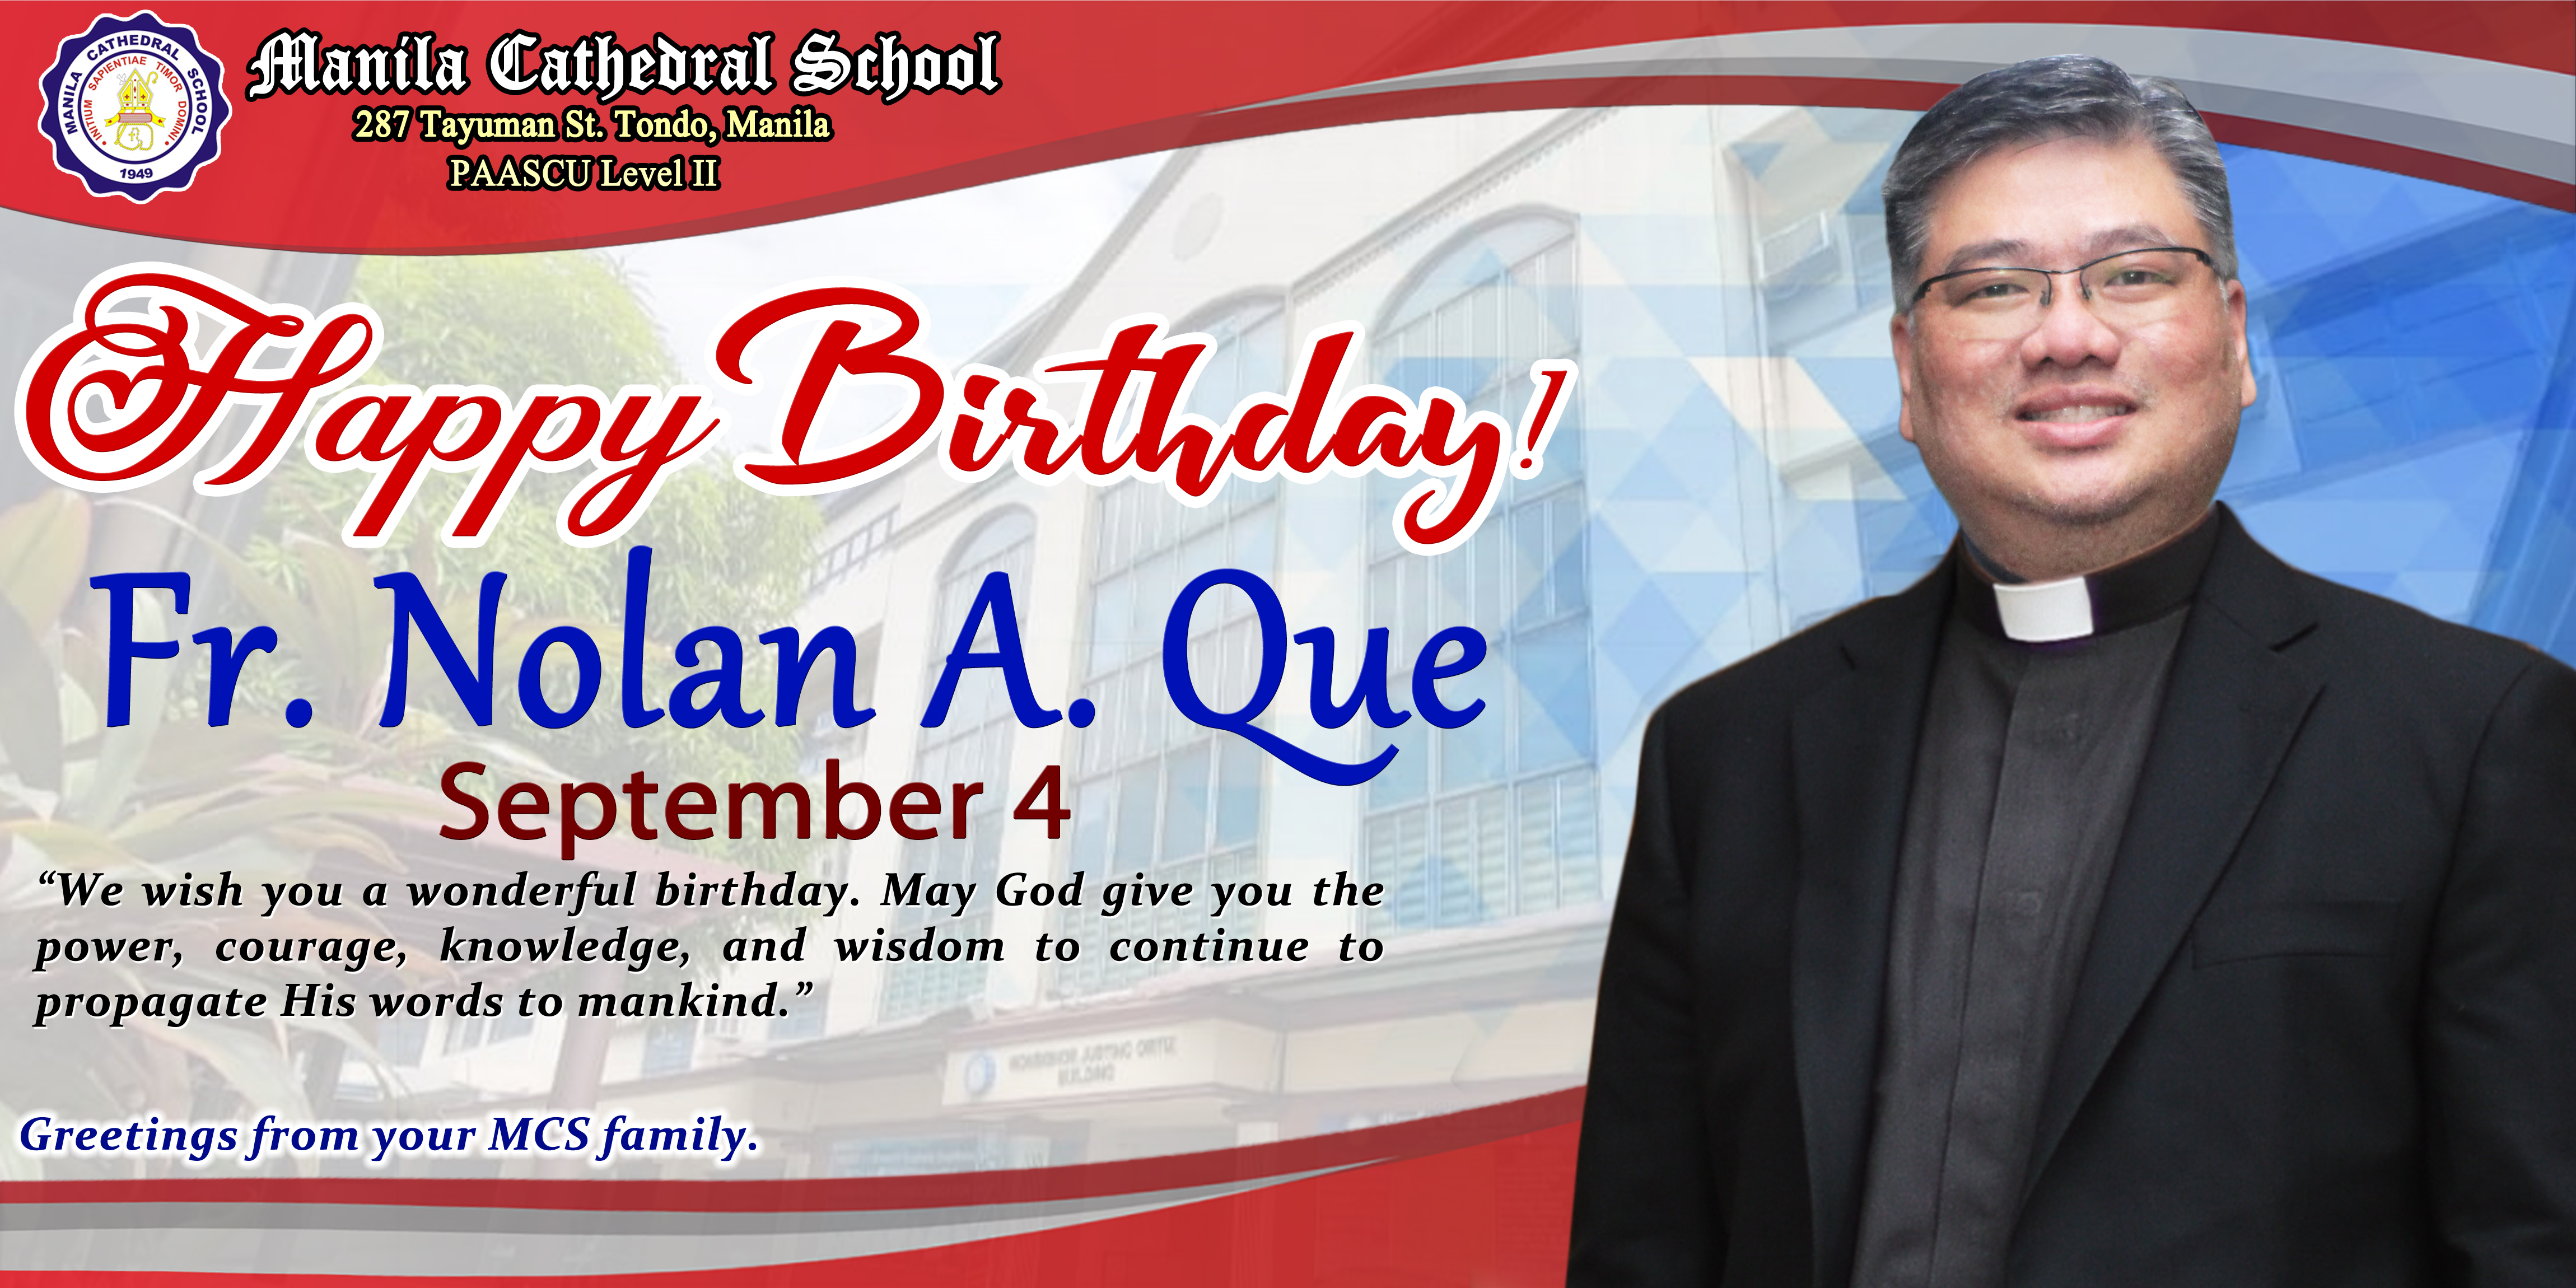 Today is the birthday of our school director Rev. Fr. Nolan A. Que. May the Lord continue to bless, guide, and protect you in your service to Him  and to His people. Stay blessed and enjoy your day to